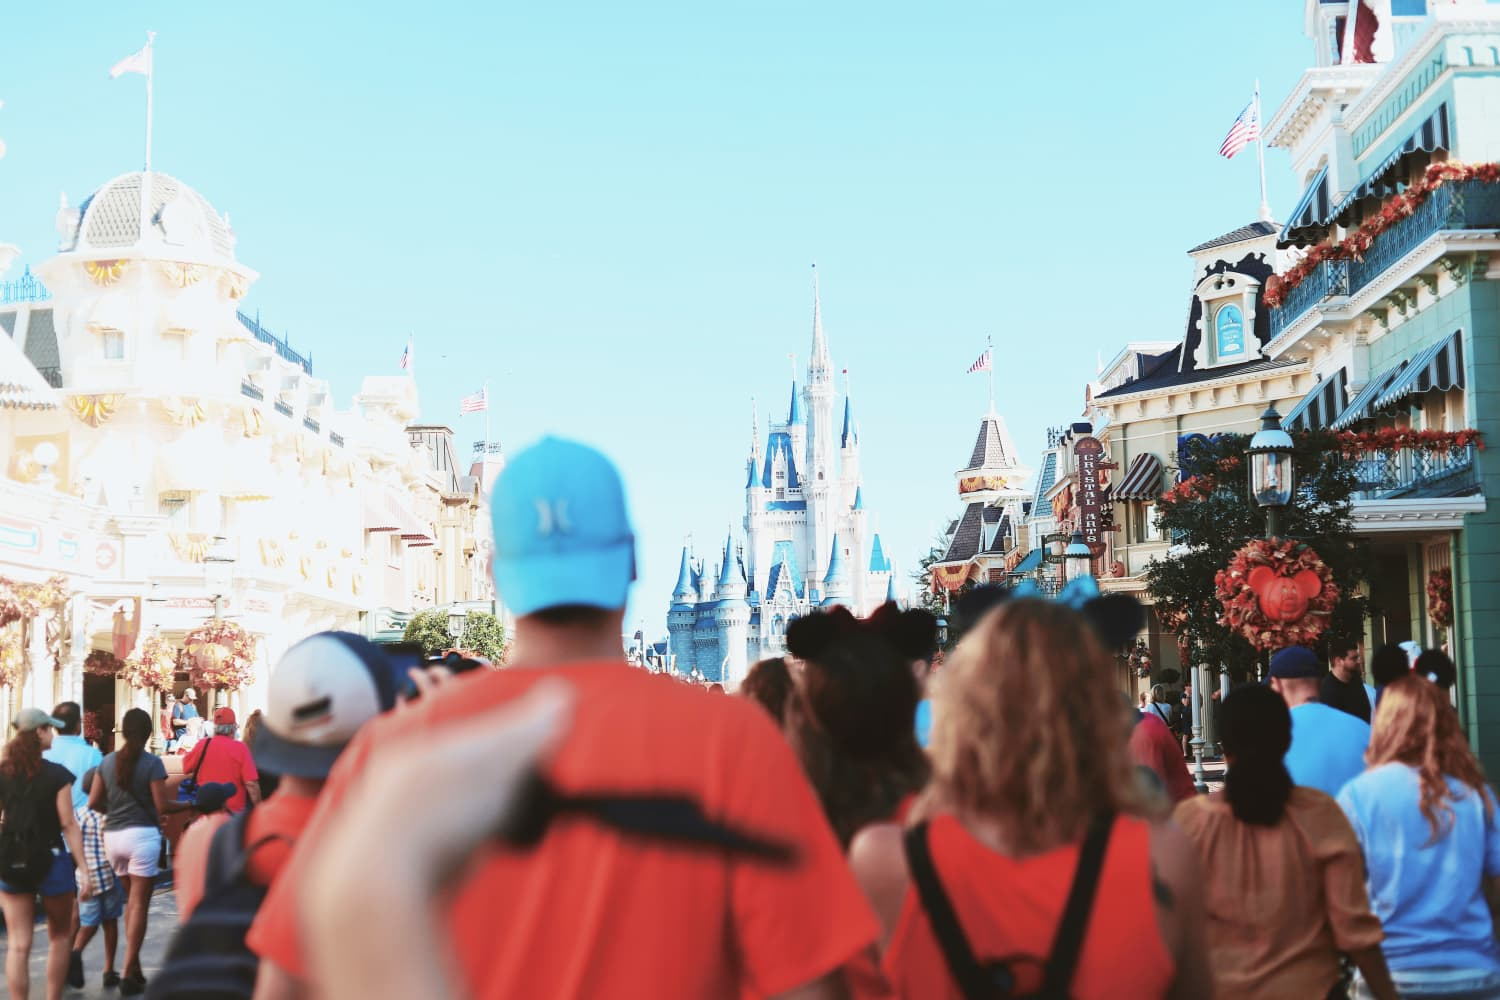 All the Bathrooms at Disney World Have One Unusual Thing in Common